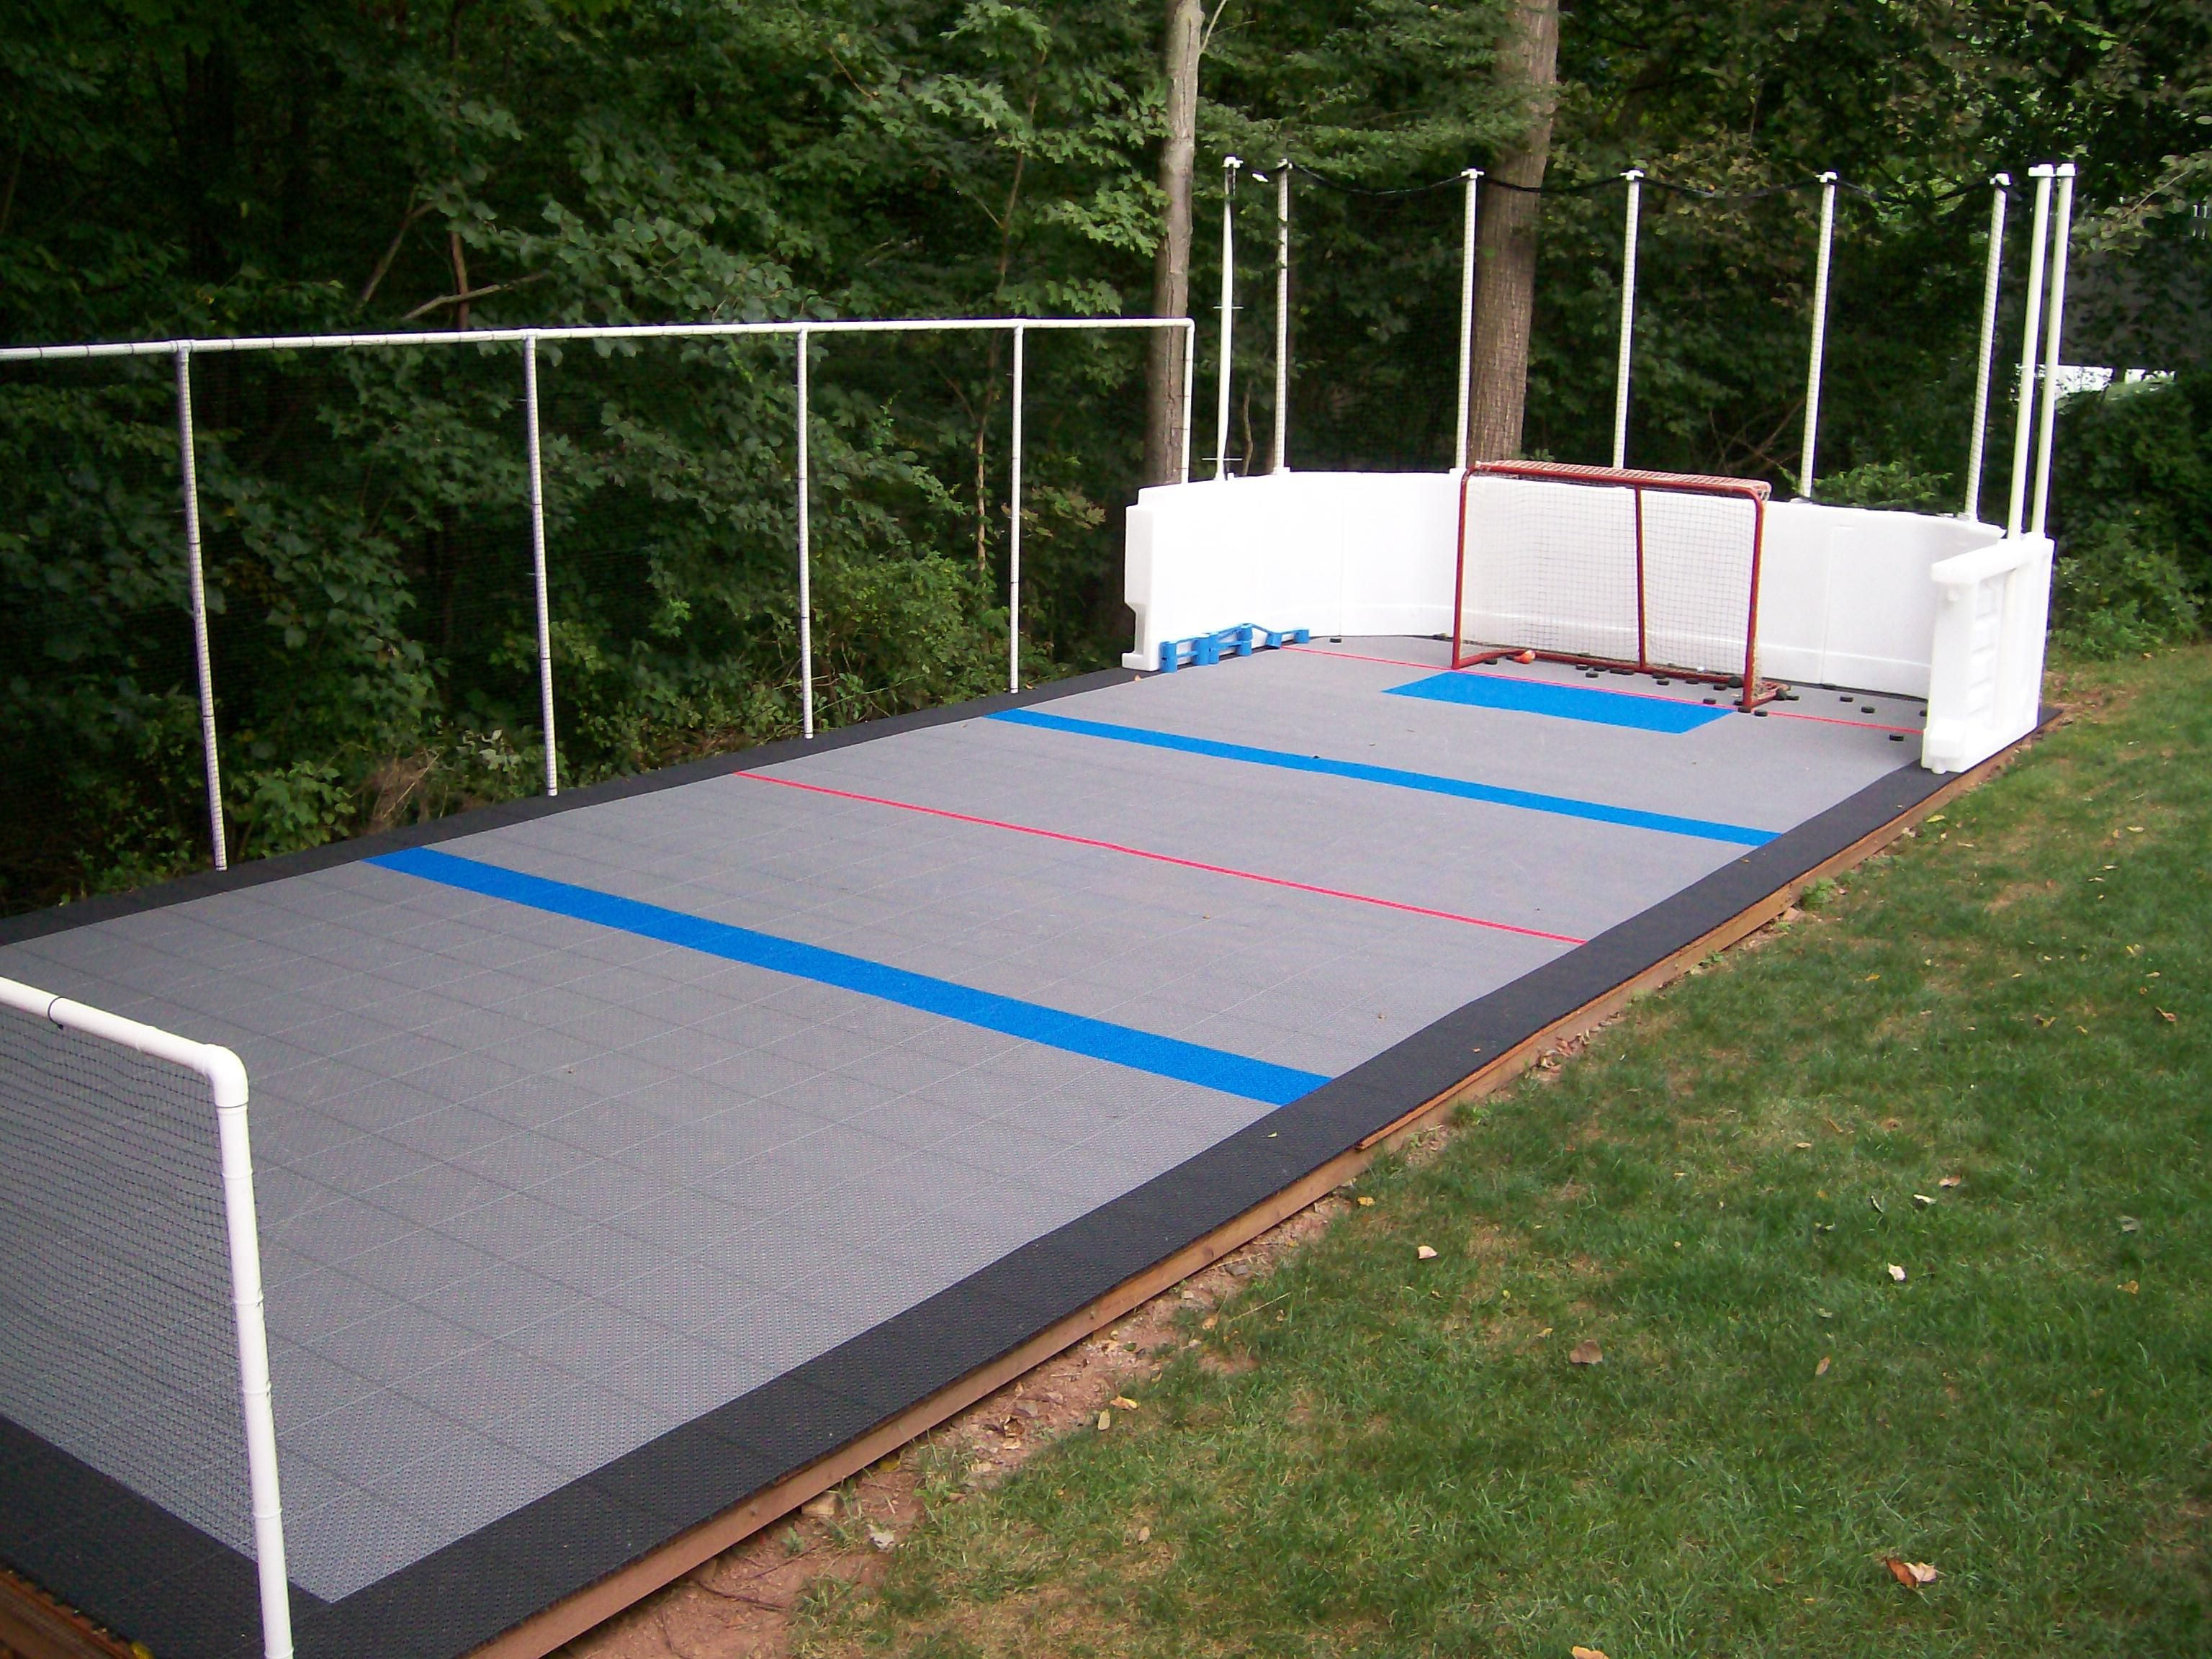 Charming Construct Your Very Own Shooting Training Area Using ProWall Dasher Boards!